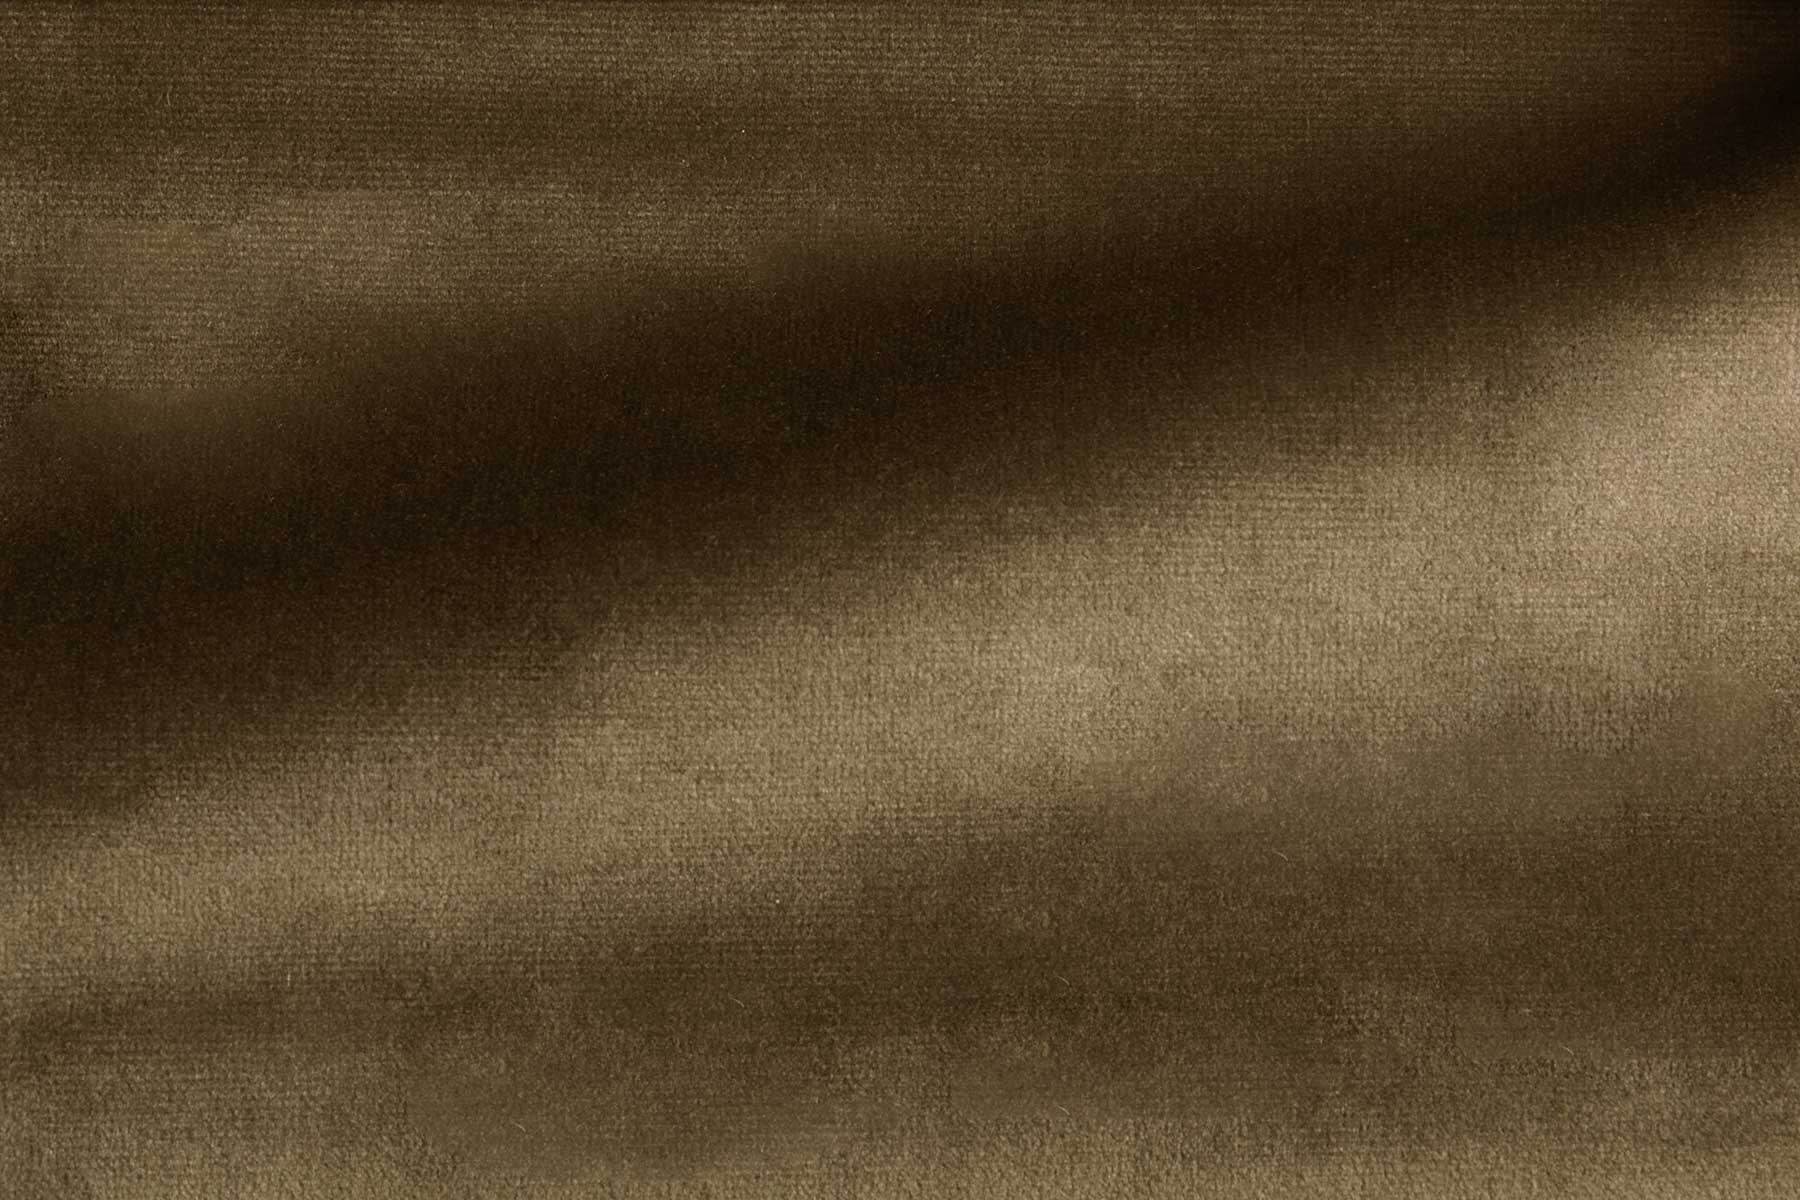 PARIS VELVET CHOCOLATE Fabric by KOKET